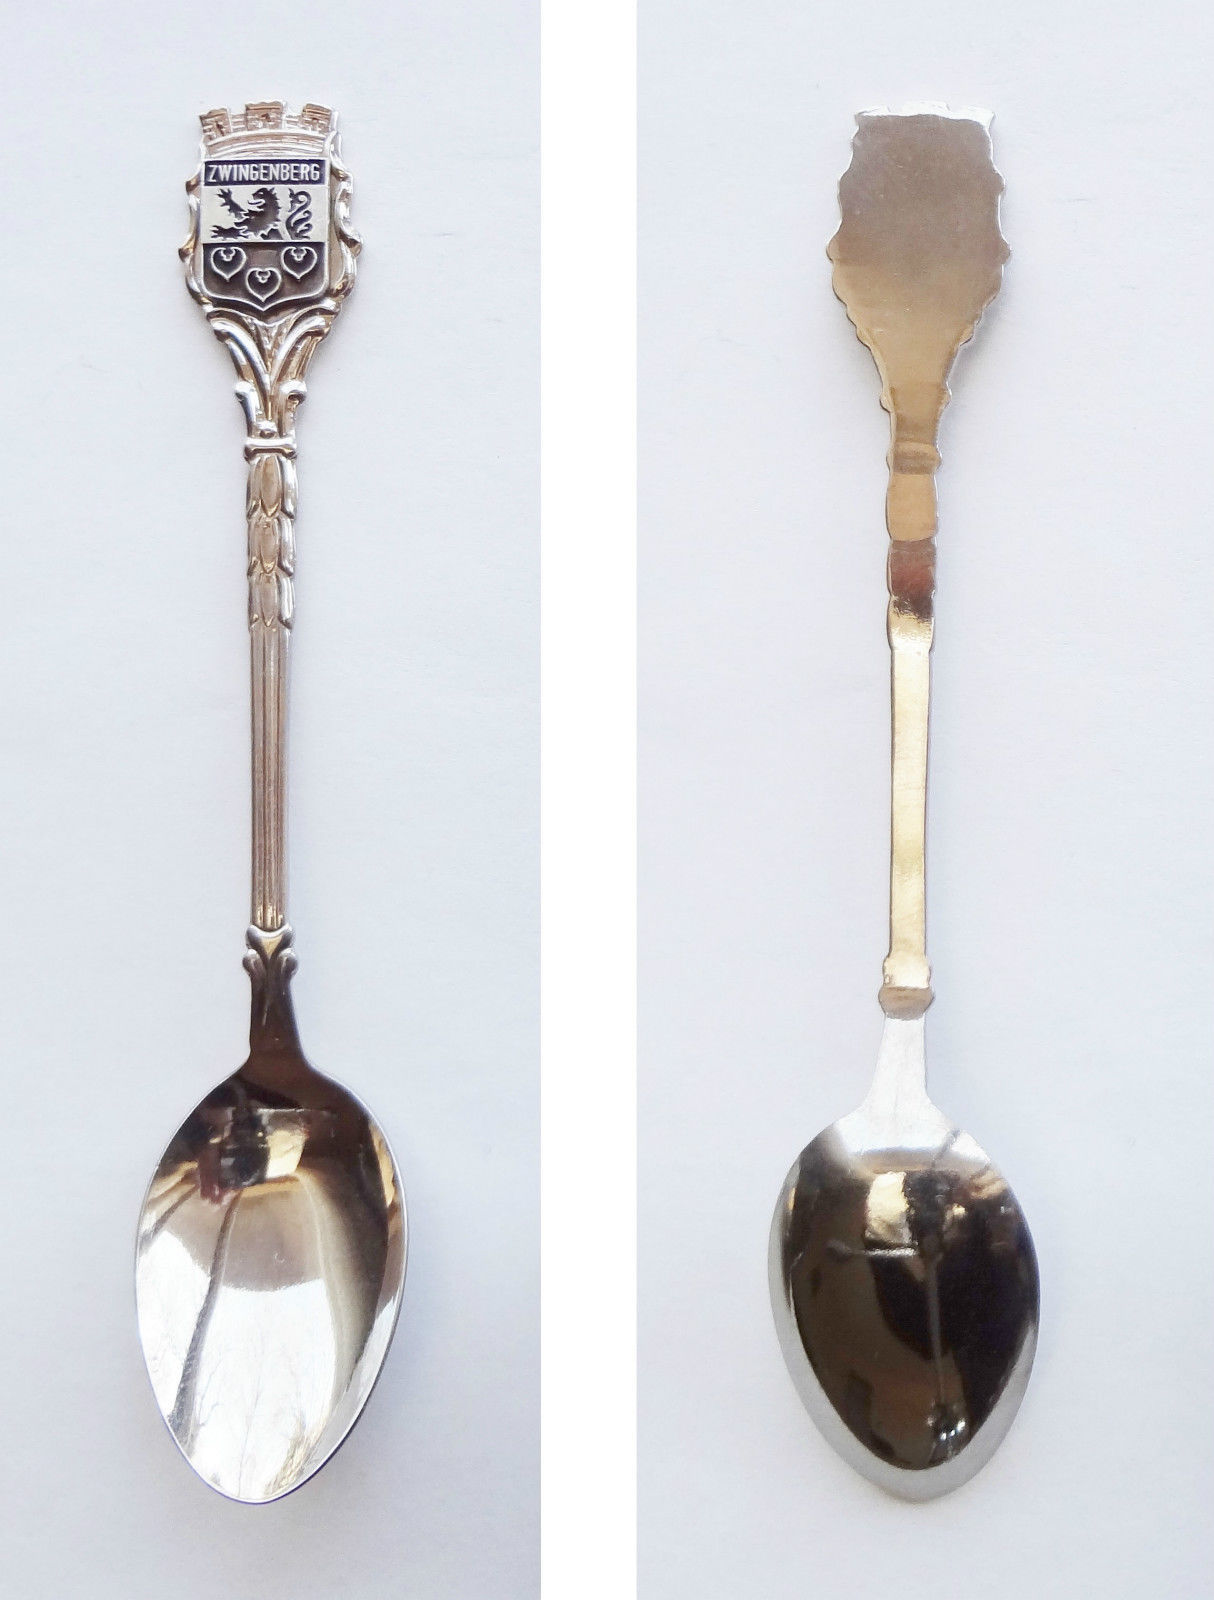 Collector Souvenir Spoon Germany Zwingenberg Hesse Coat of Arms Emblem